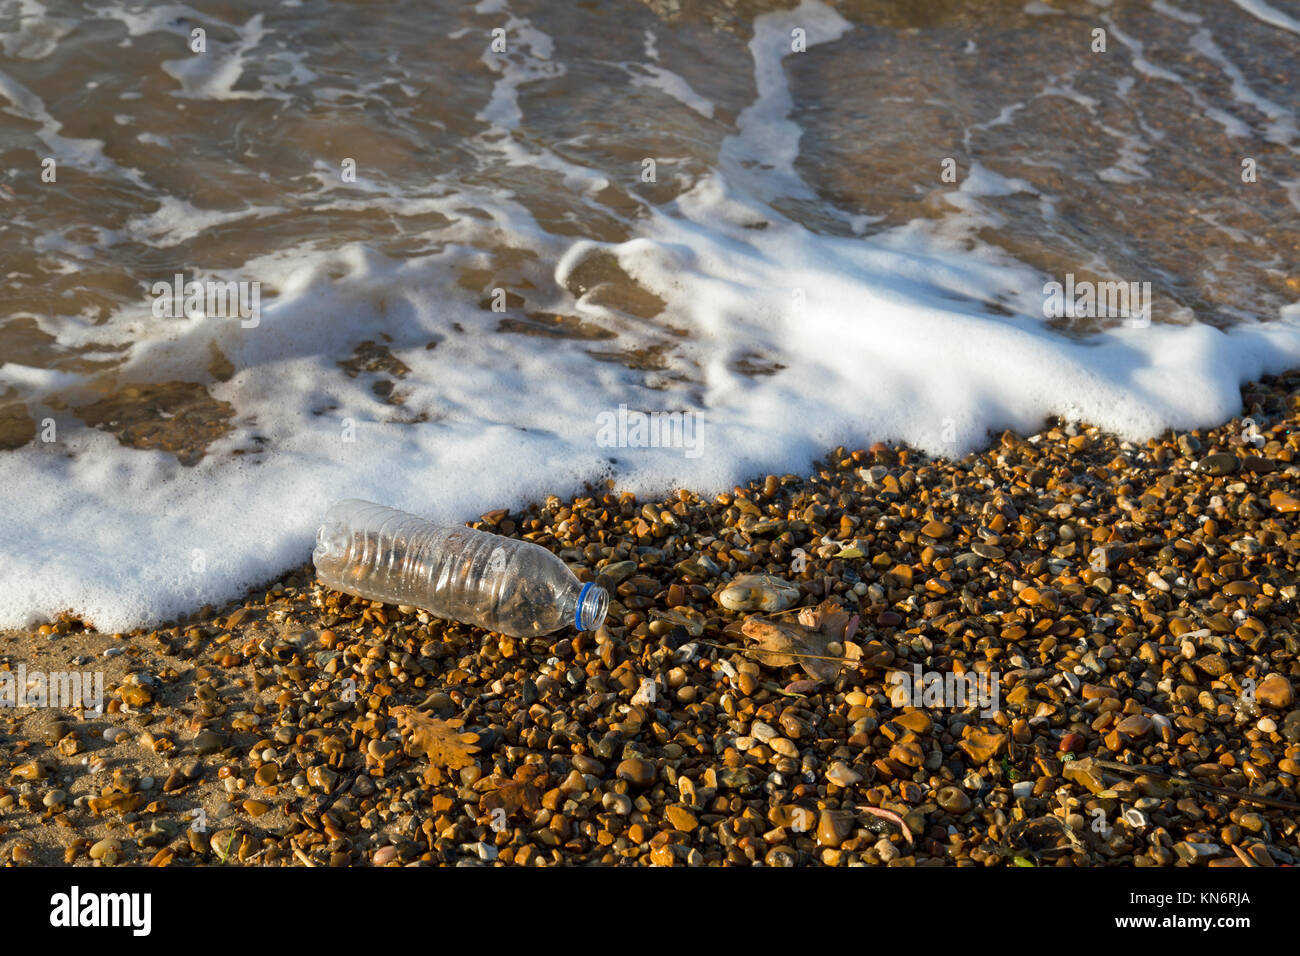 A clear plastic empty 500ml bottle on a shingle beach with waves lapping around it. - Stock Image